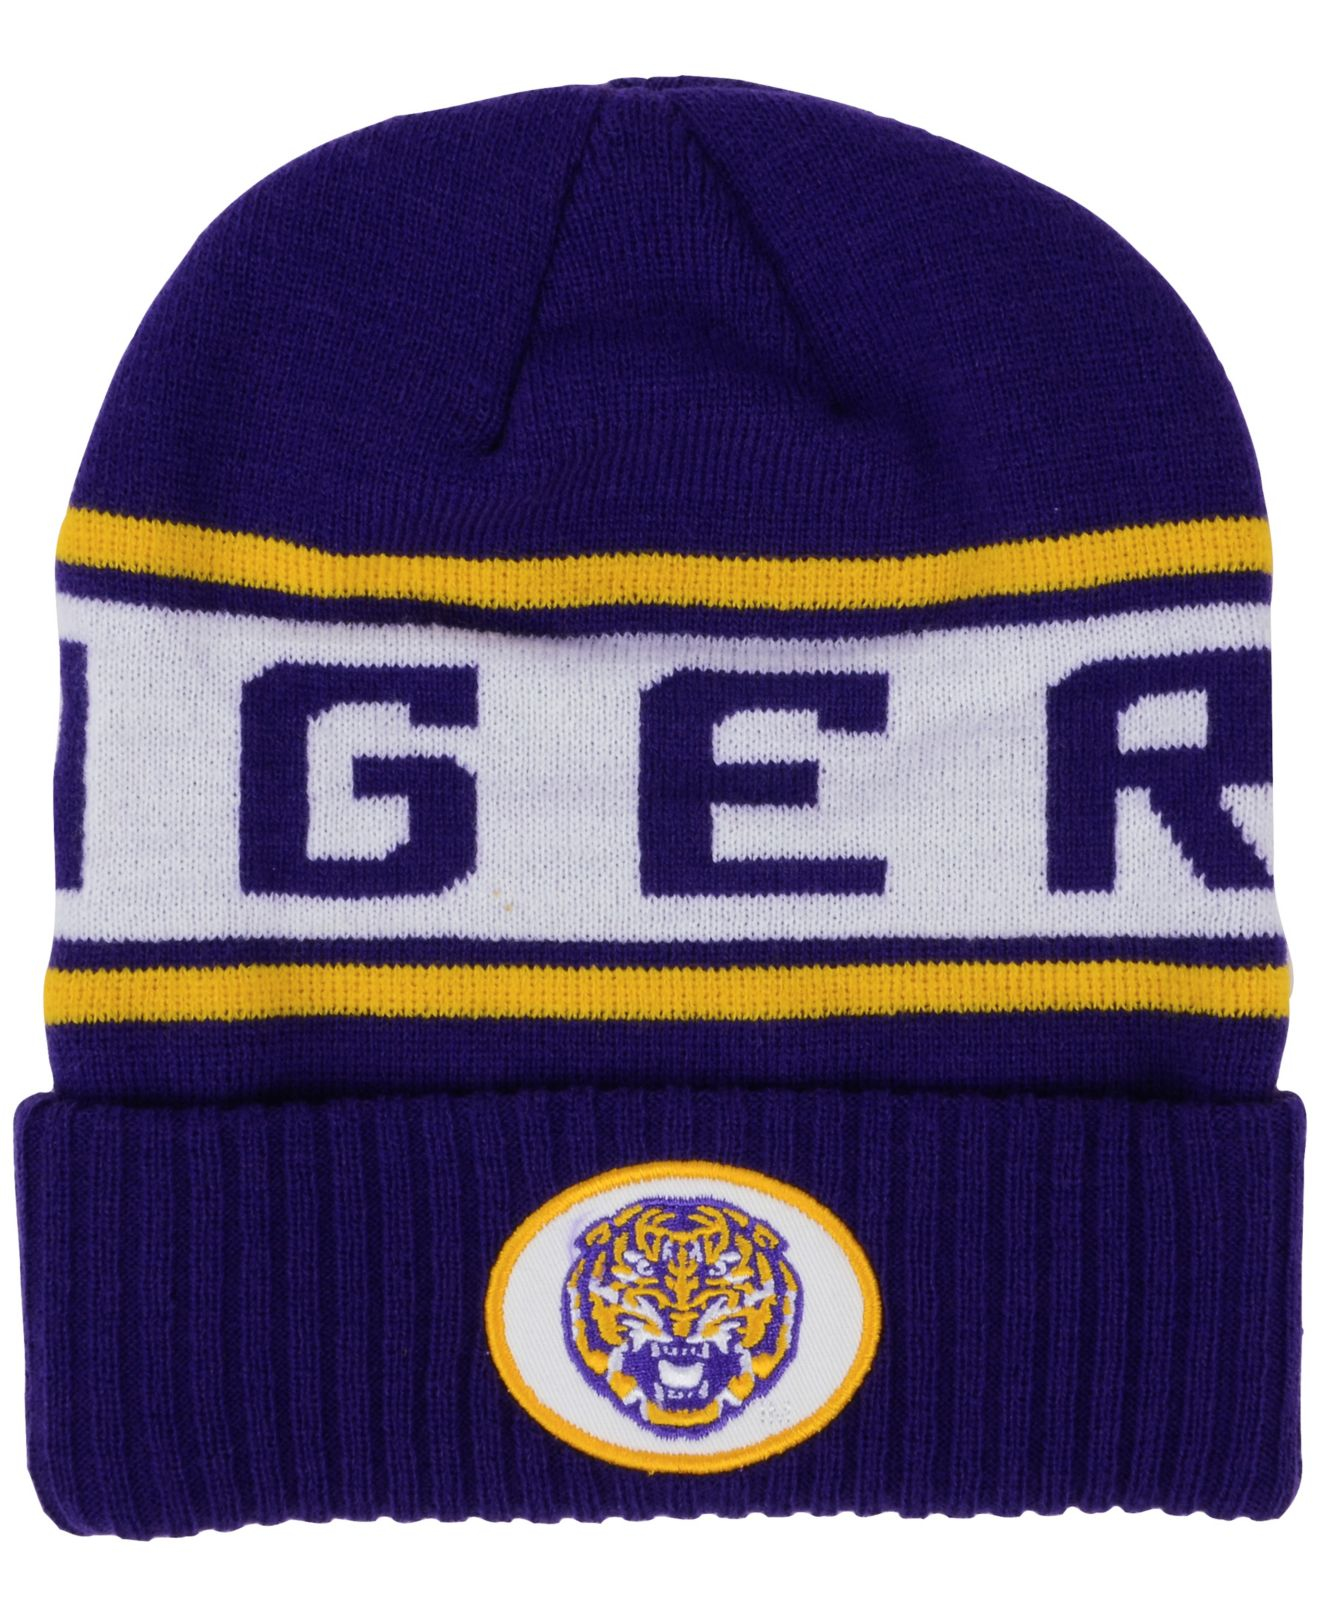 super popular 13e72 06f6b Lyst - Nike Lsu Tigers Sideline Knit Hat in Blue for Men